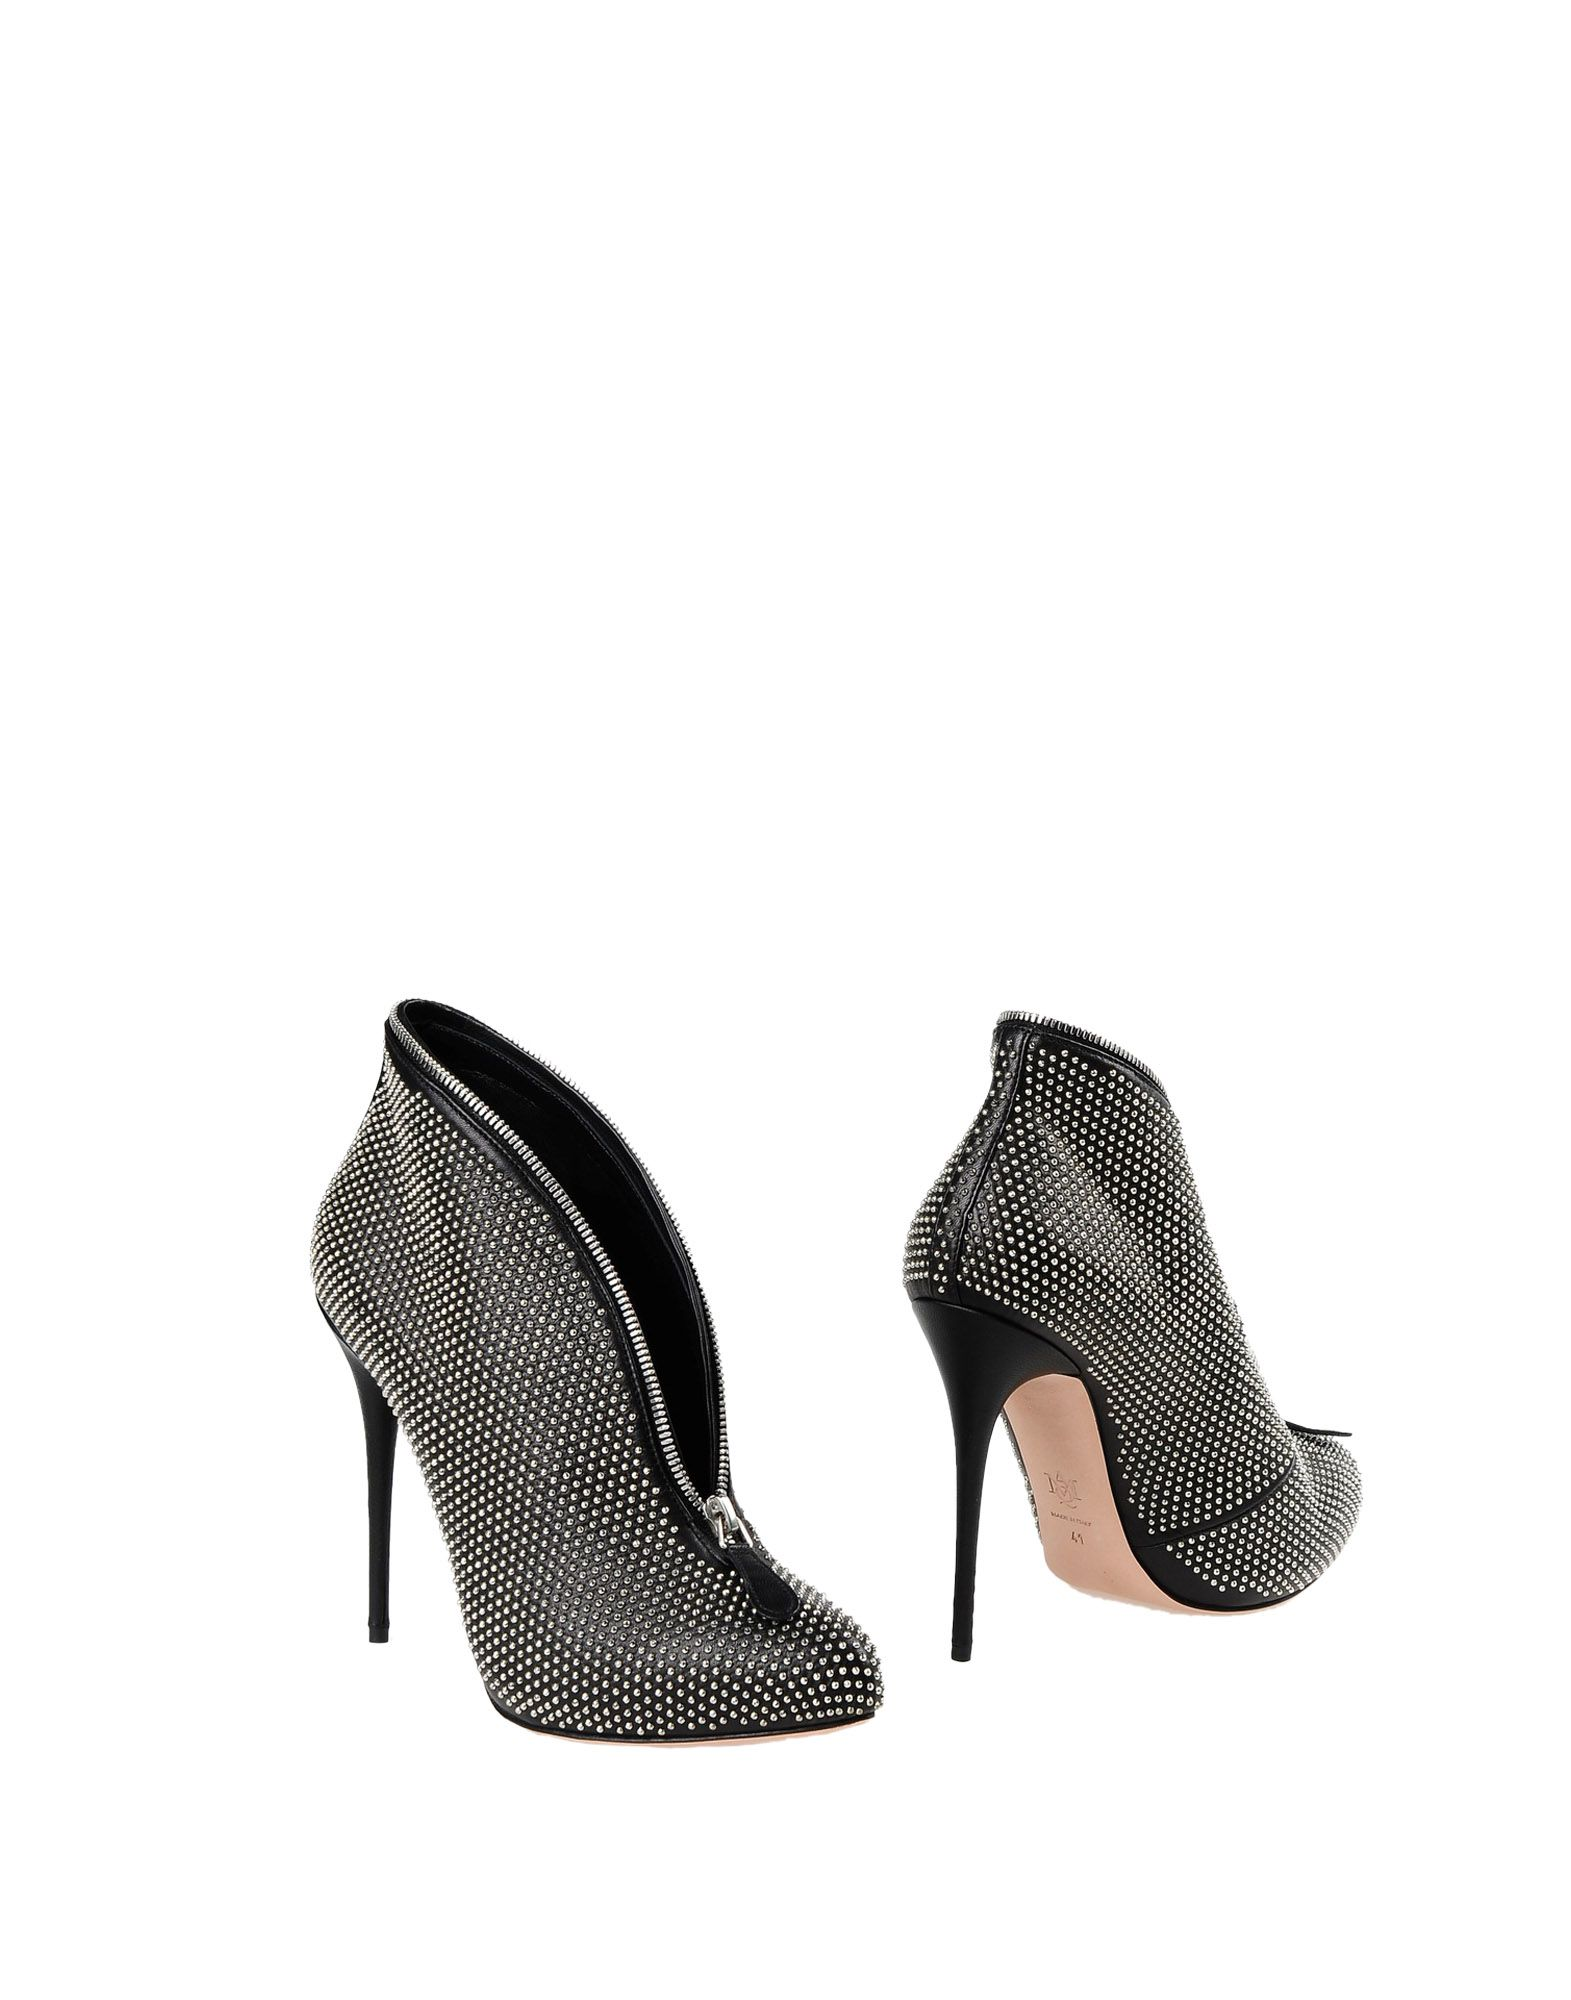 ALEXANDER MCQUEEN Booties. solid color, spike heel, leather sole, round toeline, leather lining, studs, zip, contains non-textile parts of animal origin. Leather